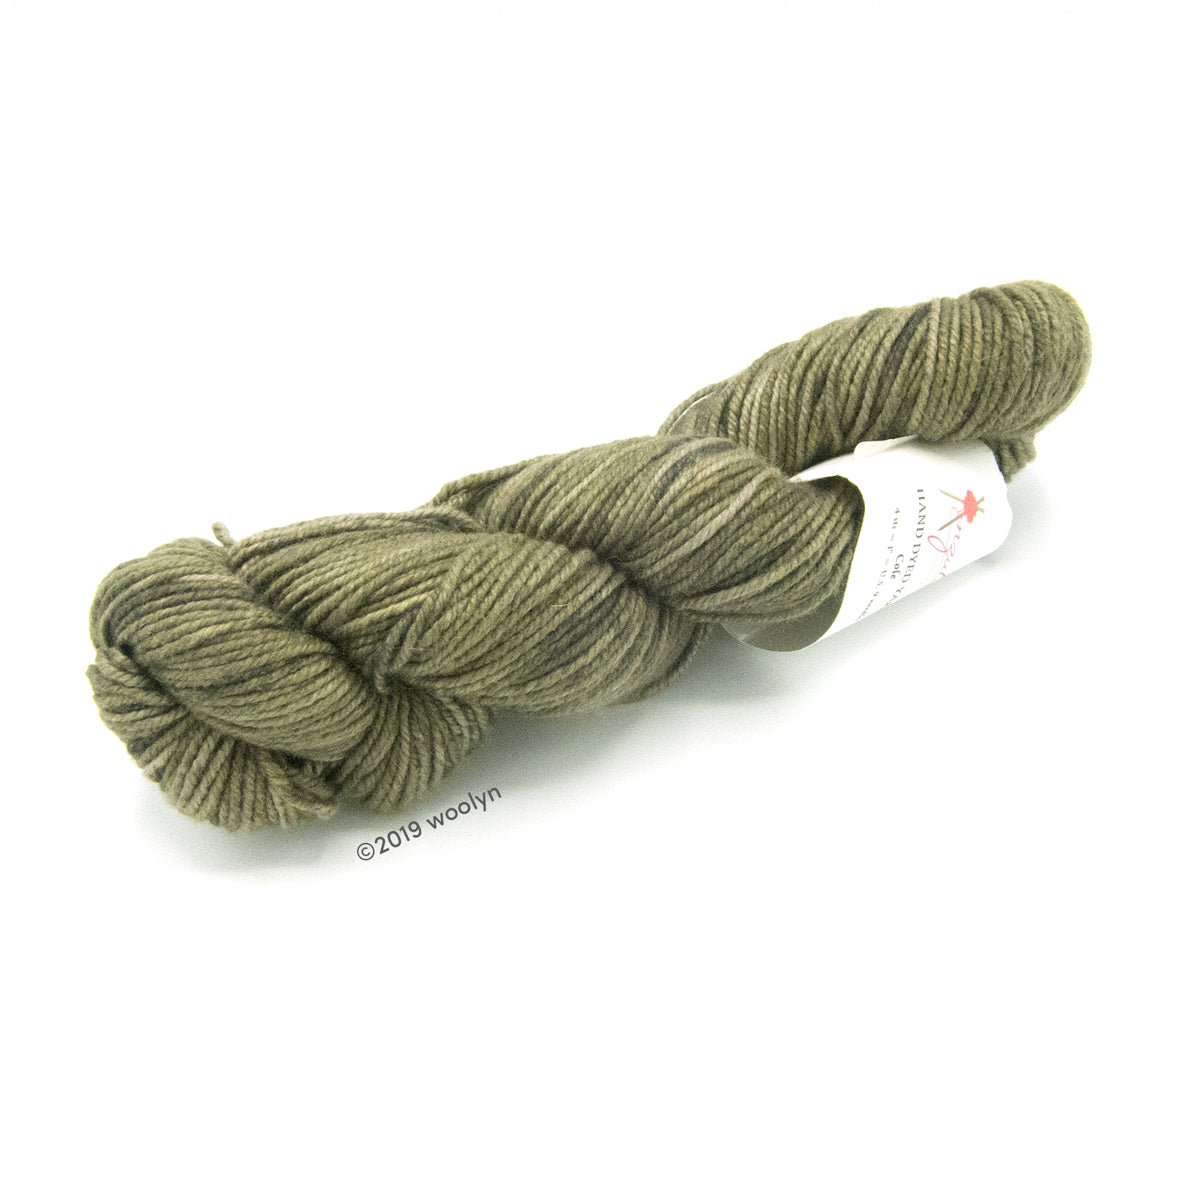 A twisted skein of Anzula Cole yarn in a dark green.